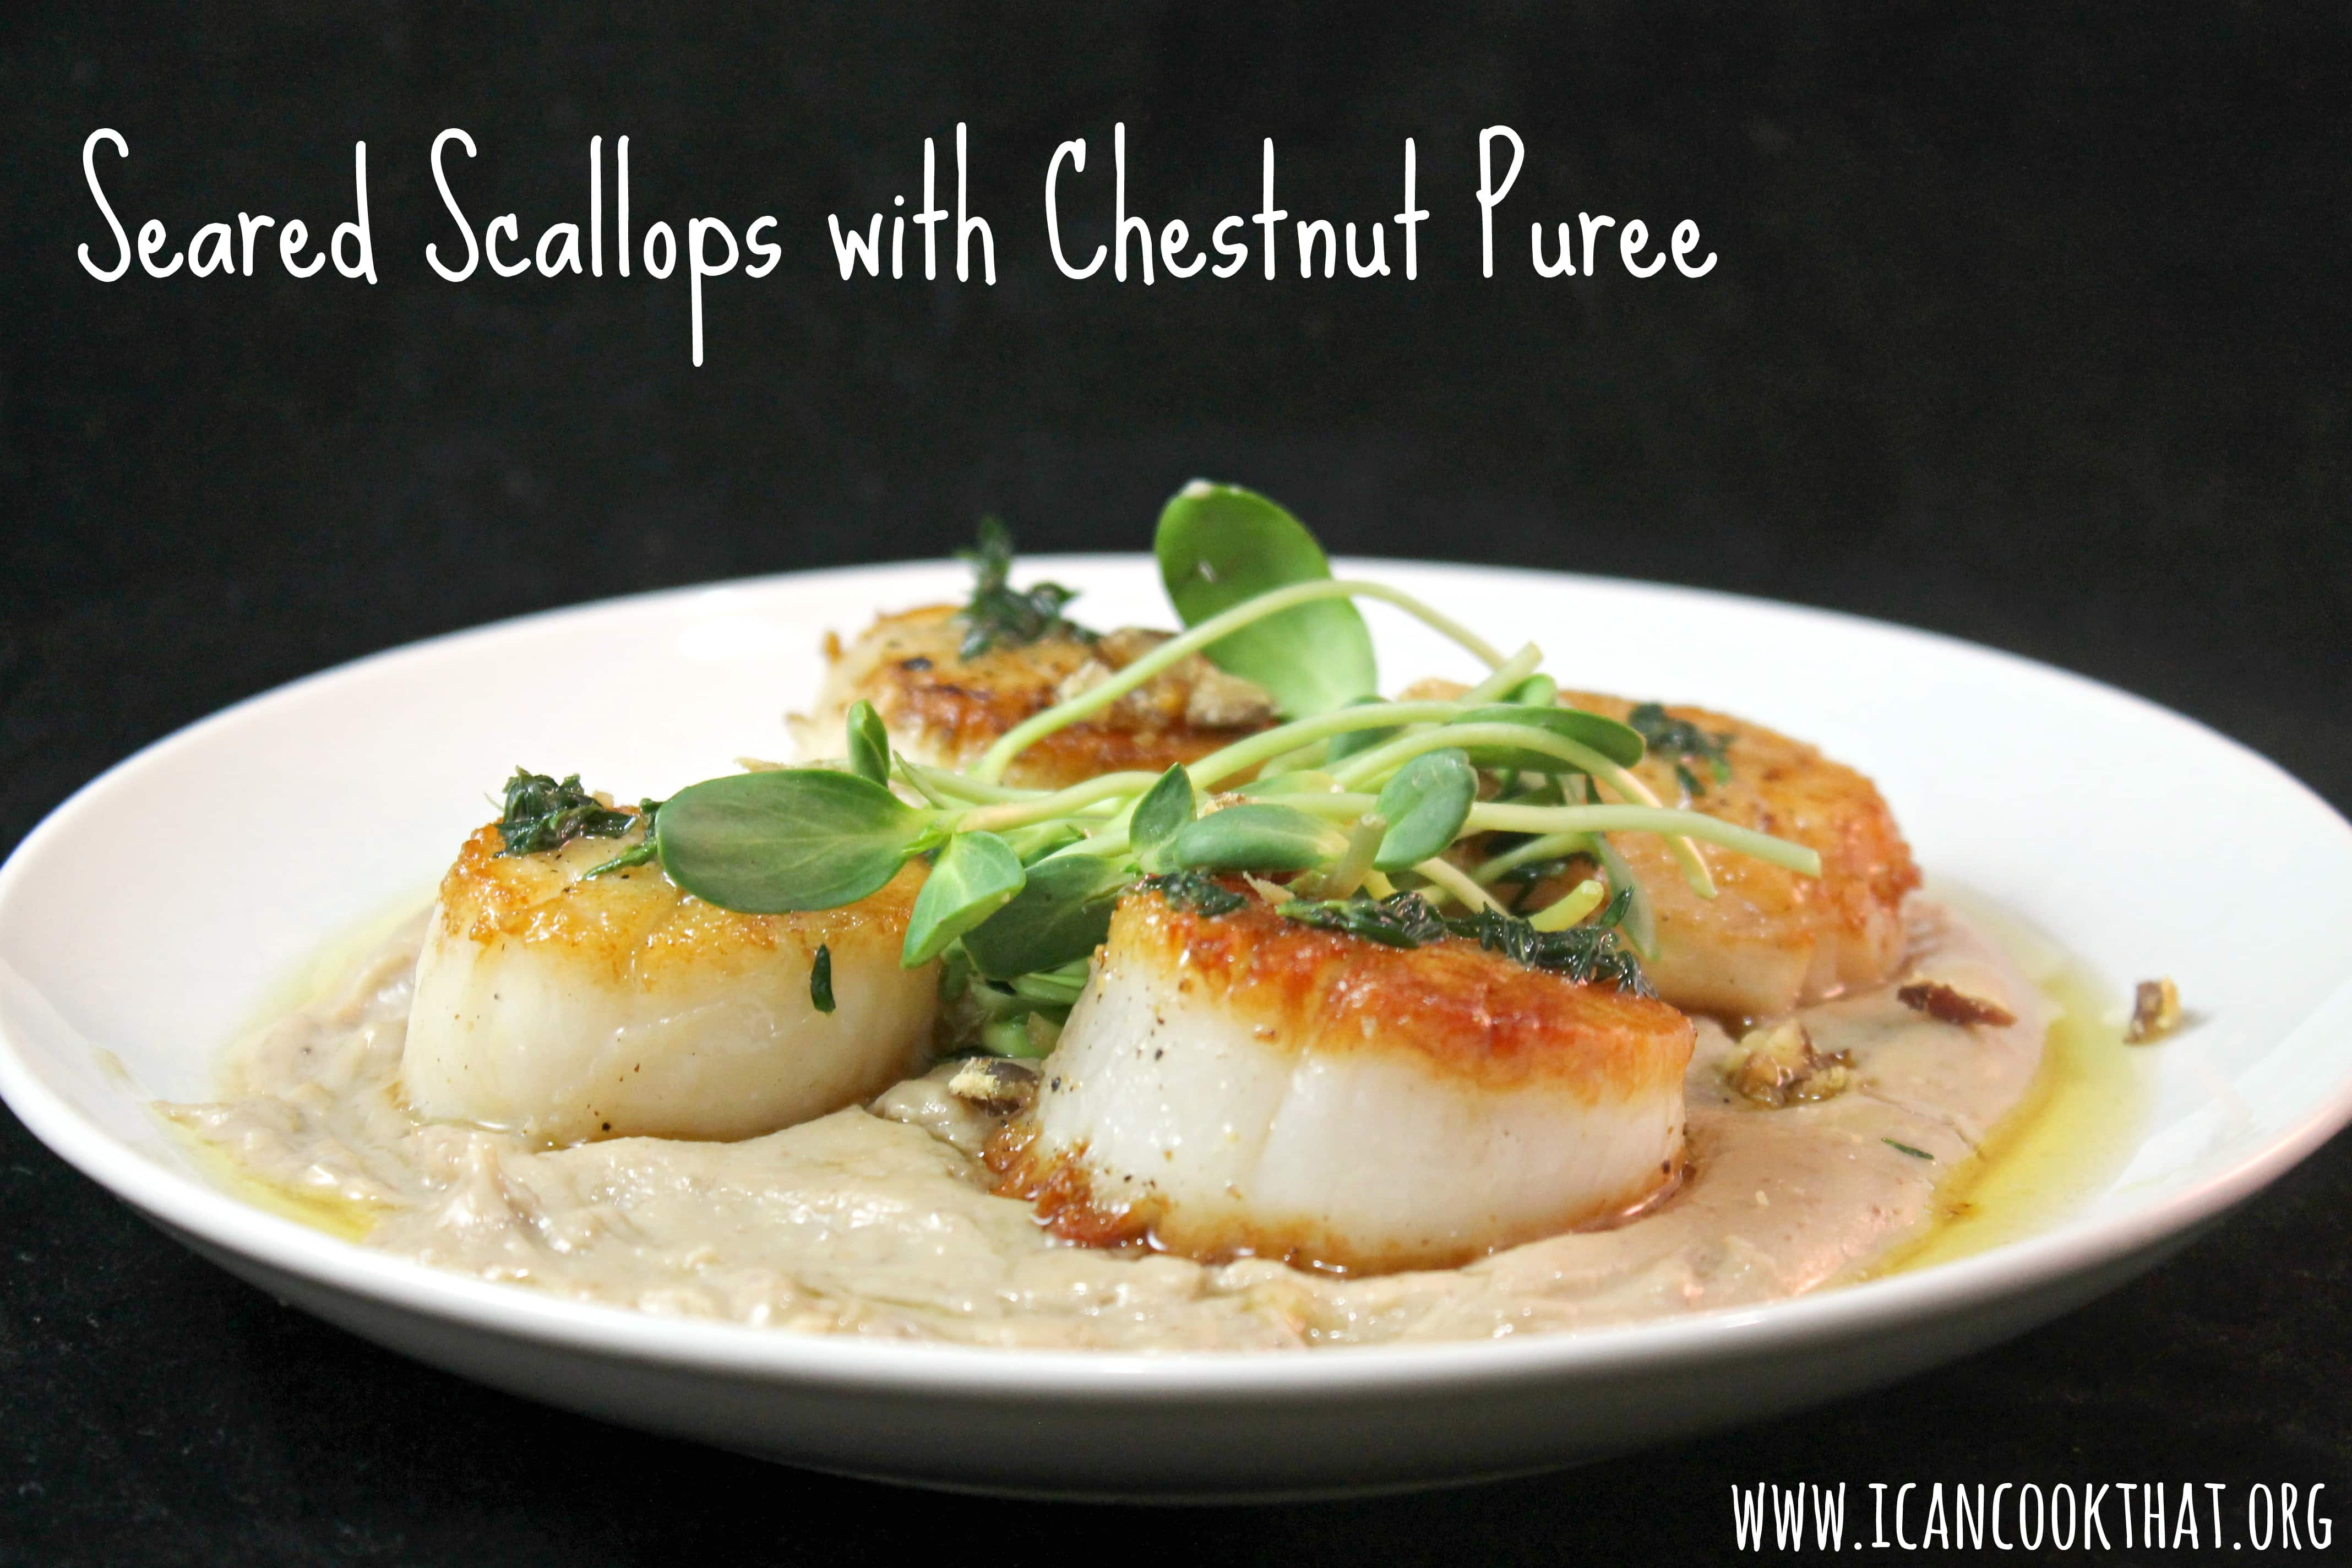 Seared Scallops with Chestnut Puree